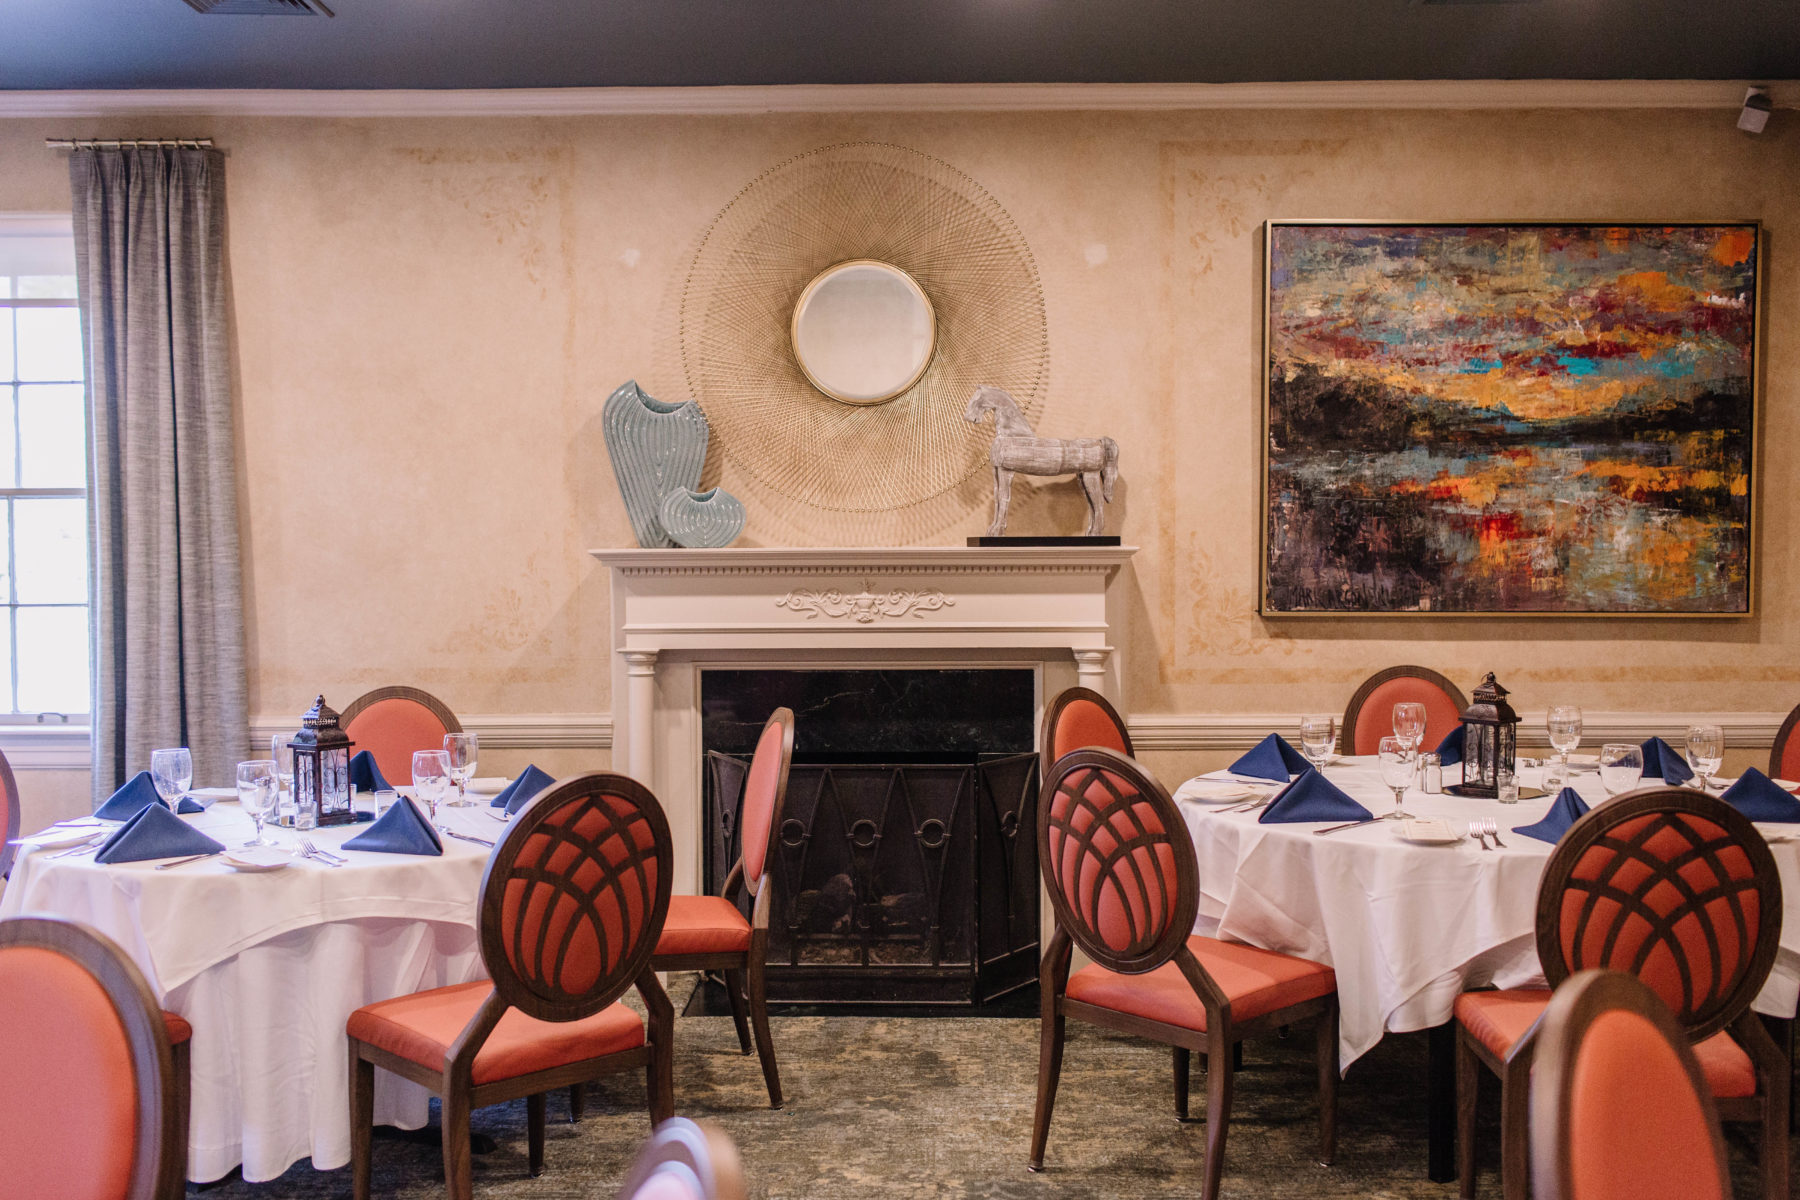 Room Options for Your Rehearsal Dinner at Mere Bulles featured on Nashville Bride Guide